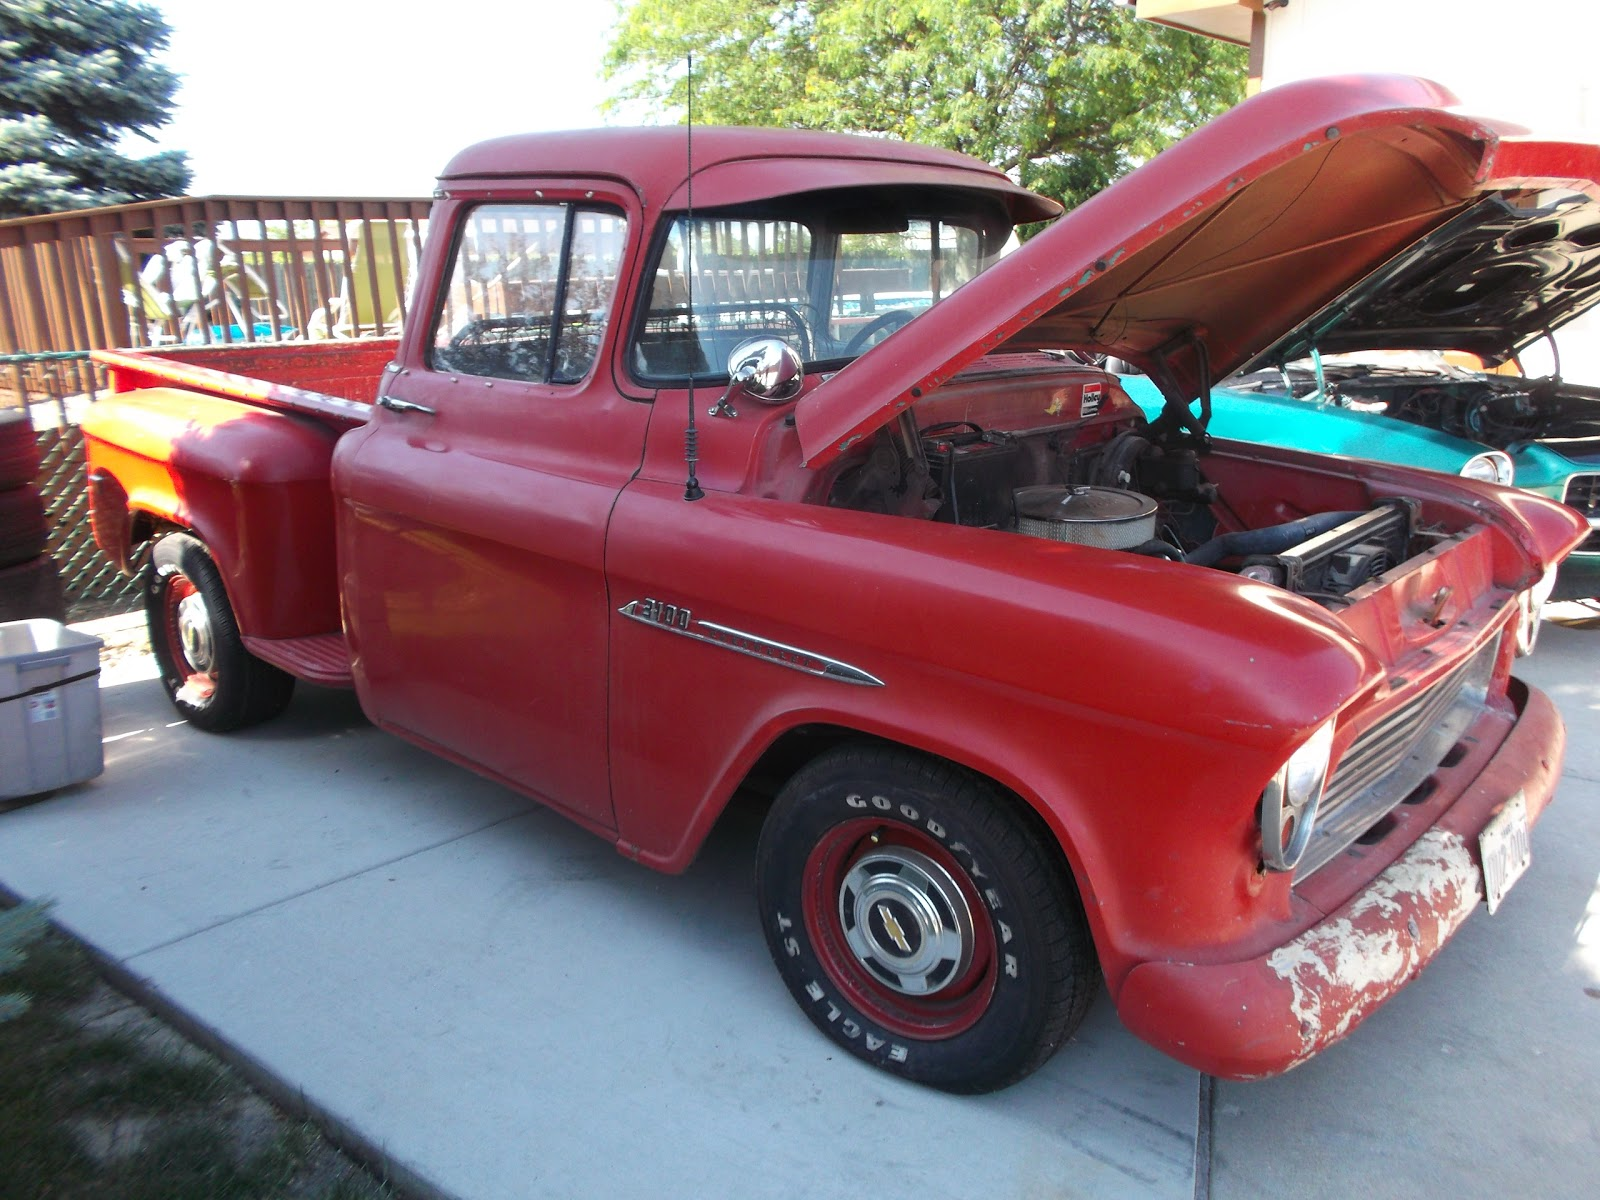 55 chevy pickup for sale autos post. Black Bedroom Furniture Sets. Home Design Ideas